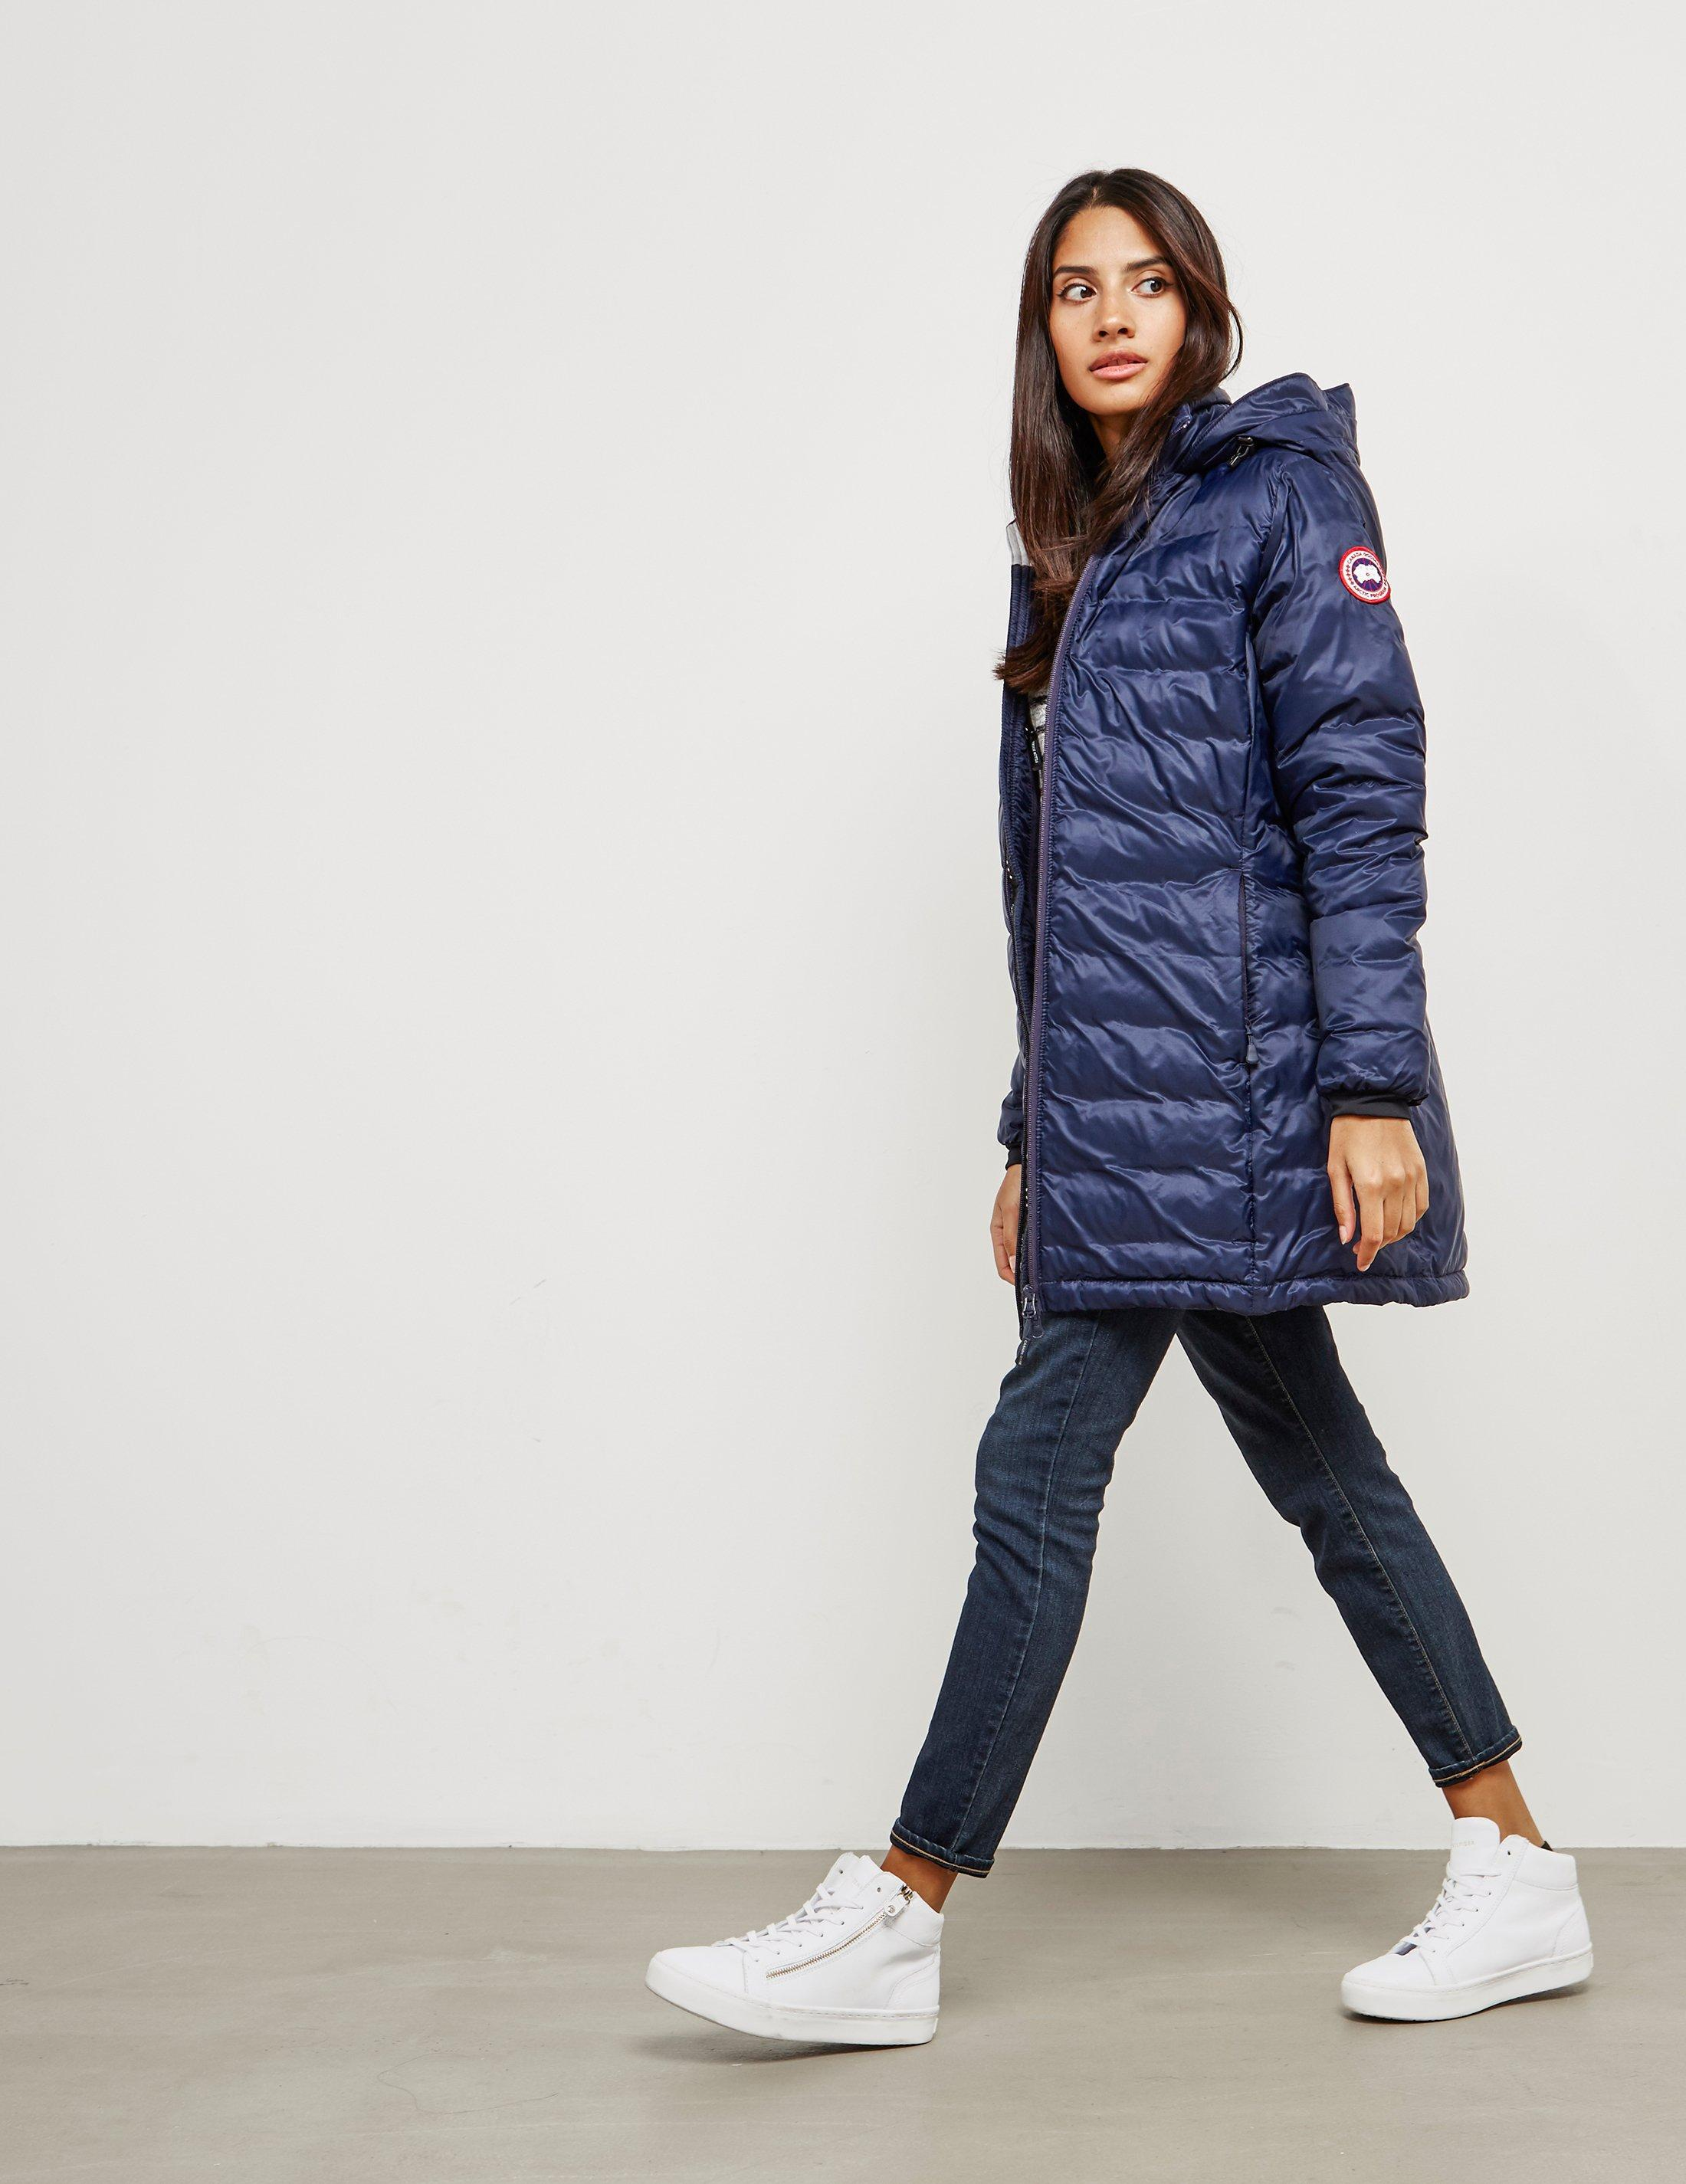 543fbd55b53 Canada Goose Womens Camp Hooded Padded Jacket - Online Exclusive ...